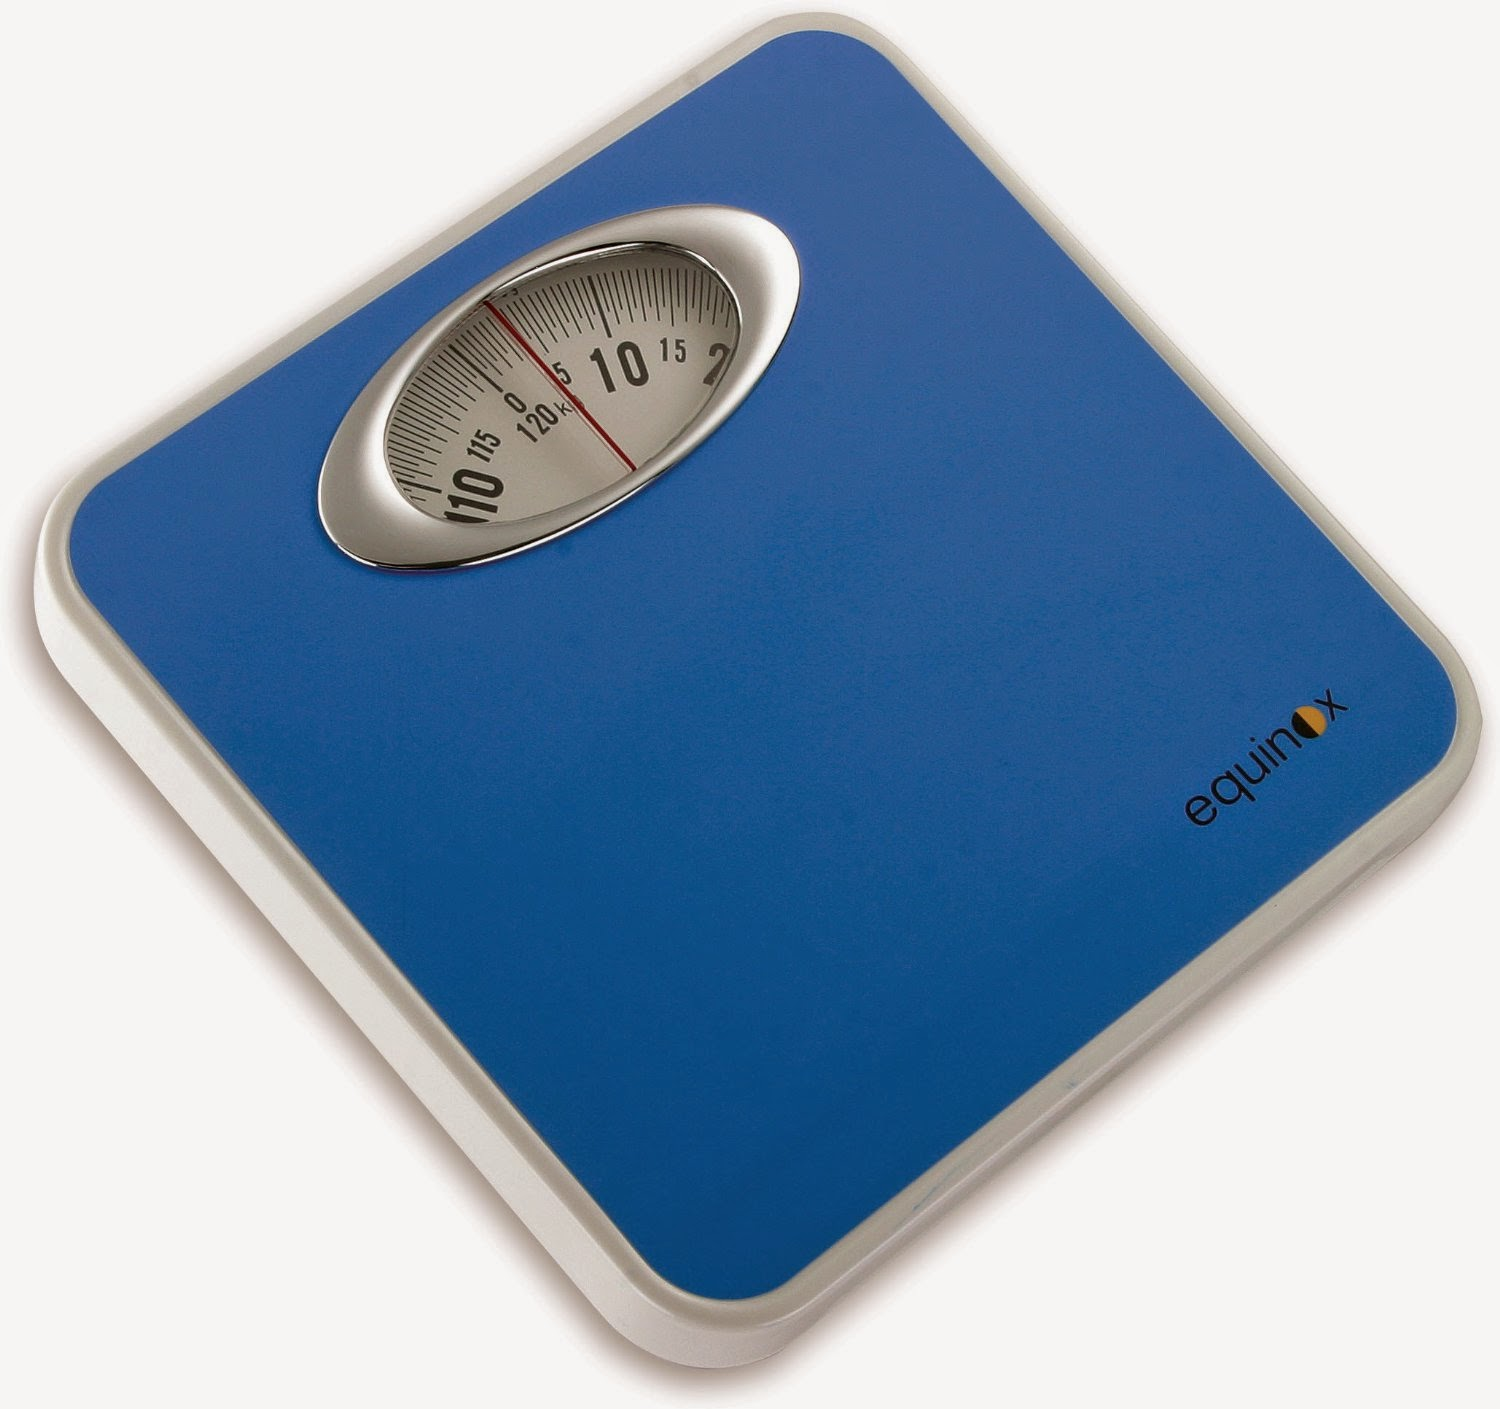 Amazon: Buy Equinox BR-9015 Analog Weighing Scale at Rs.624